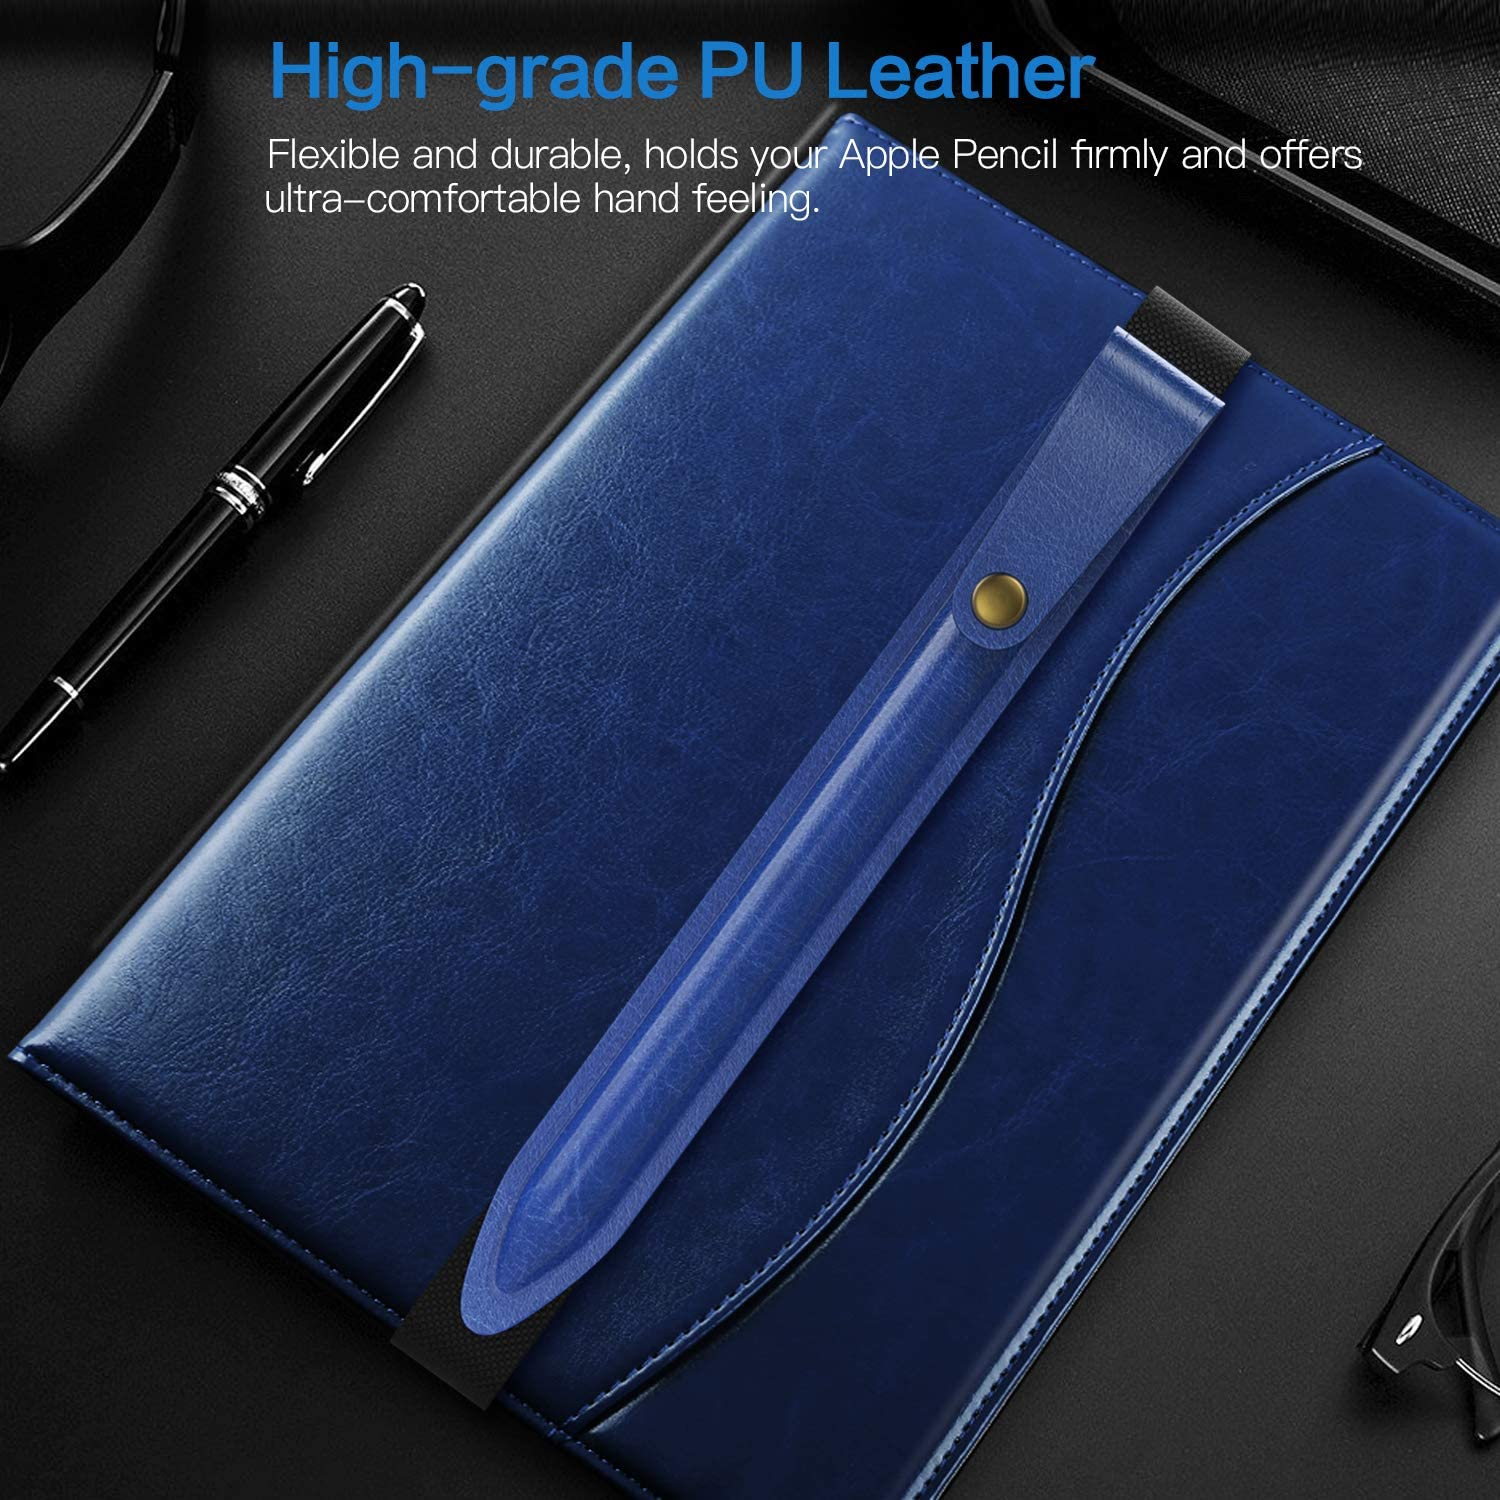 Indigo TiMOVO Cover Compatible for Pencil Gen 2 Holder Case Pencil Pocket PU Leather Case Pouch with Elastic Band Pencil Sleeve Fit iPad Pro 11 2018//2020 iPad Pro 12.9 2018//2020